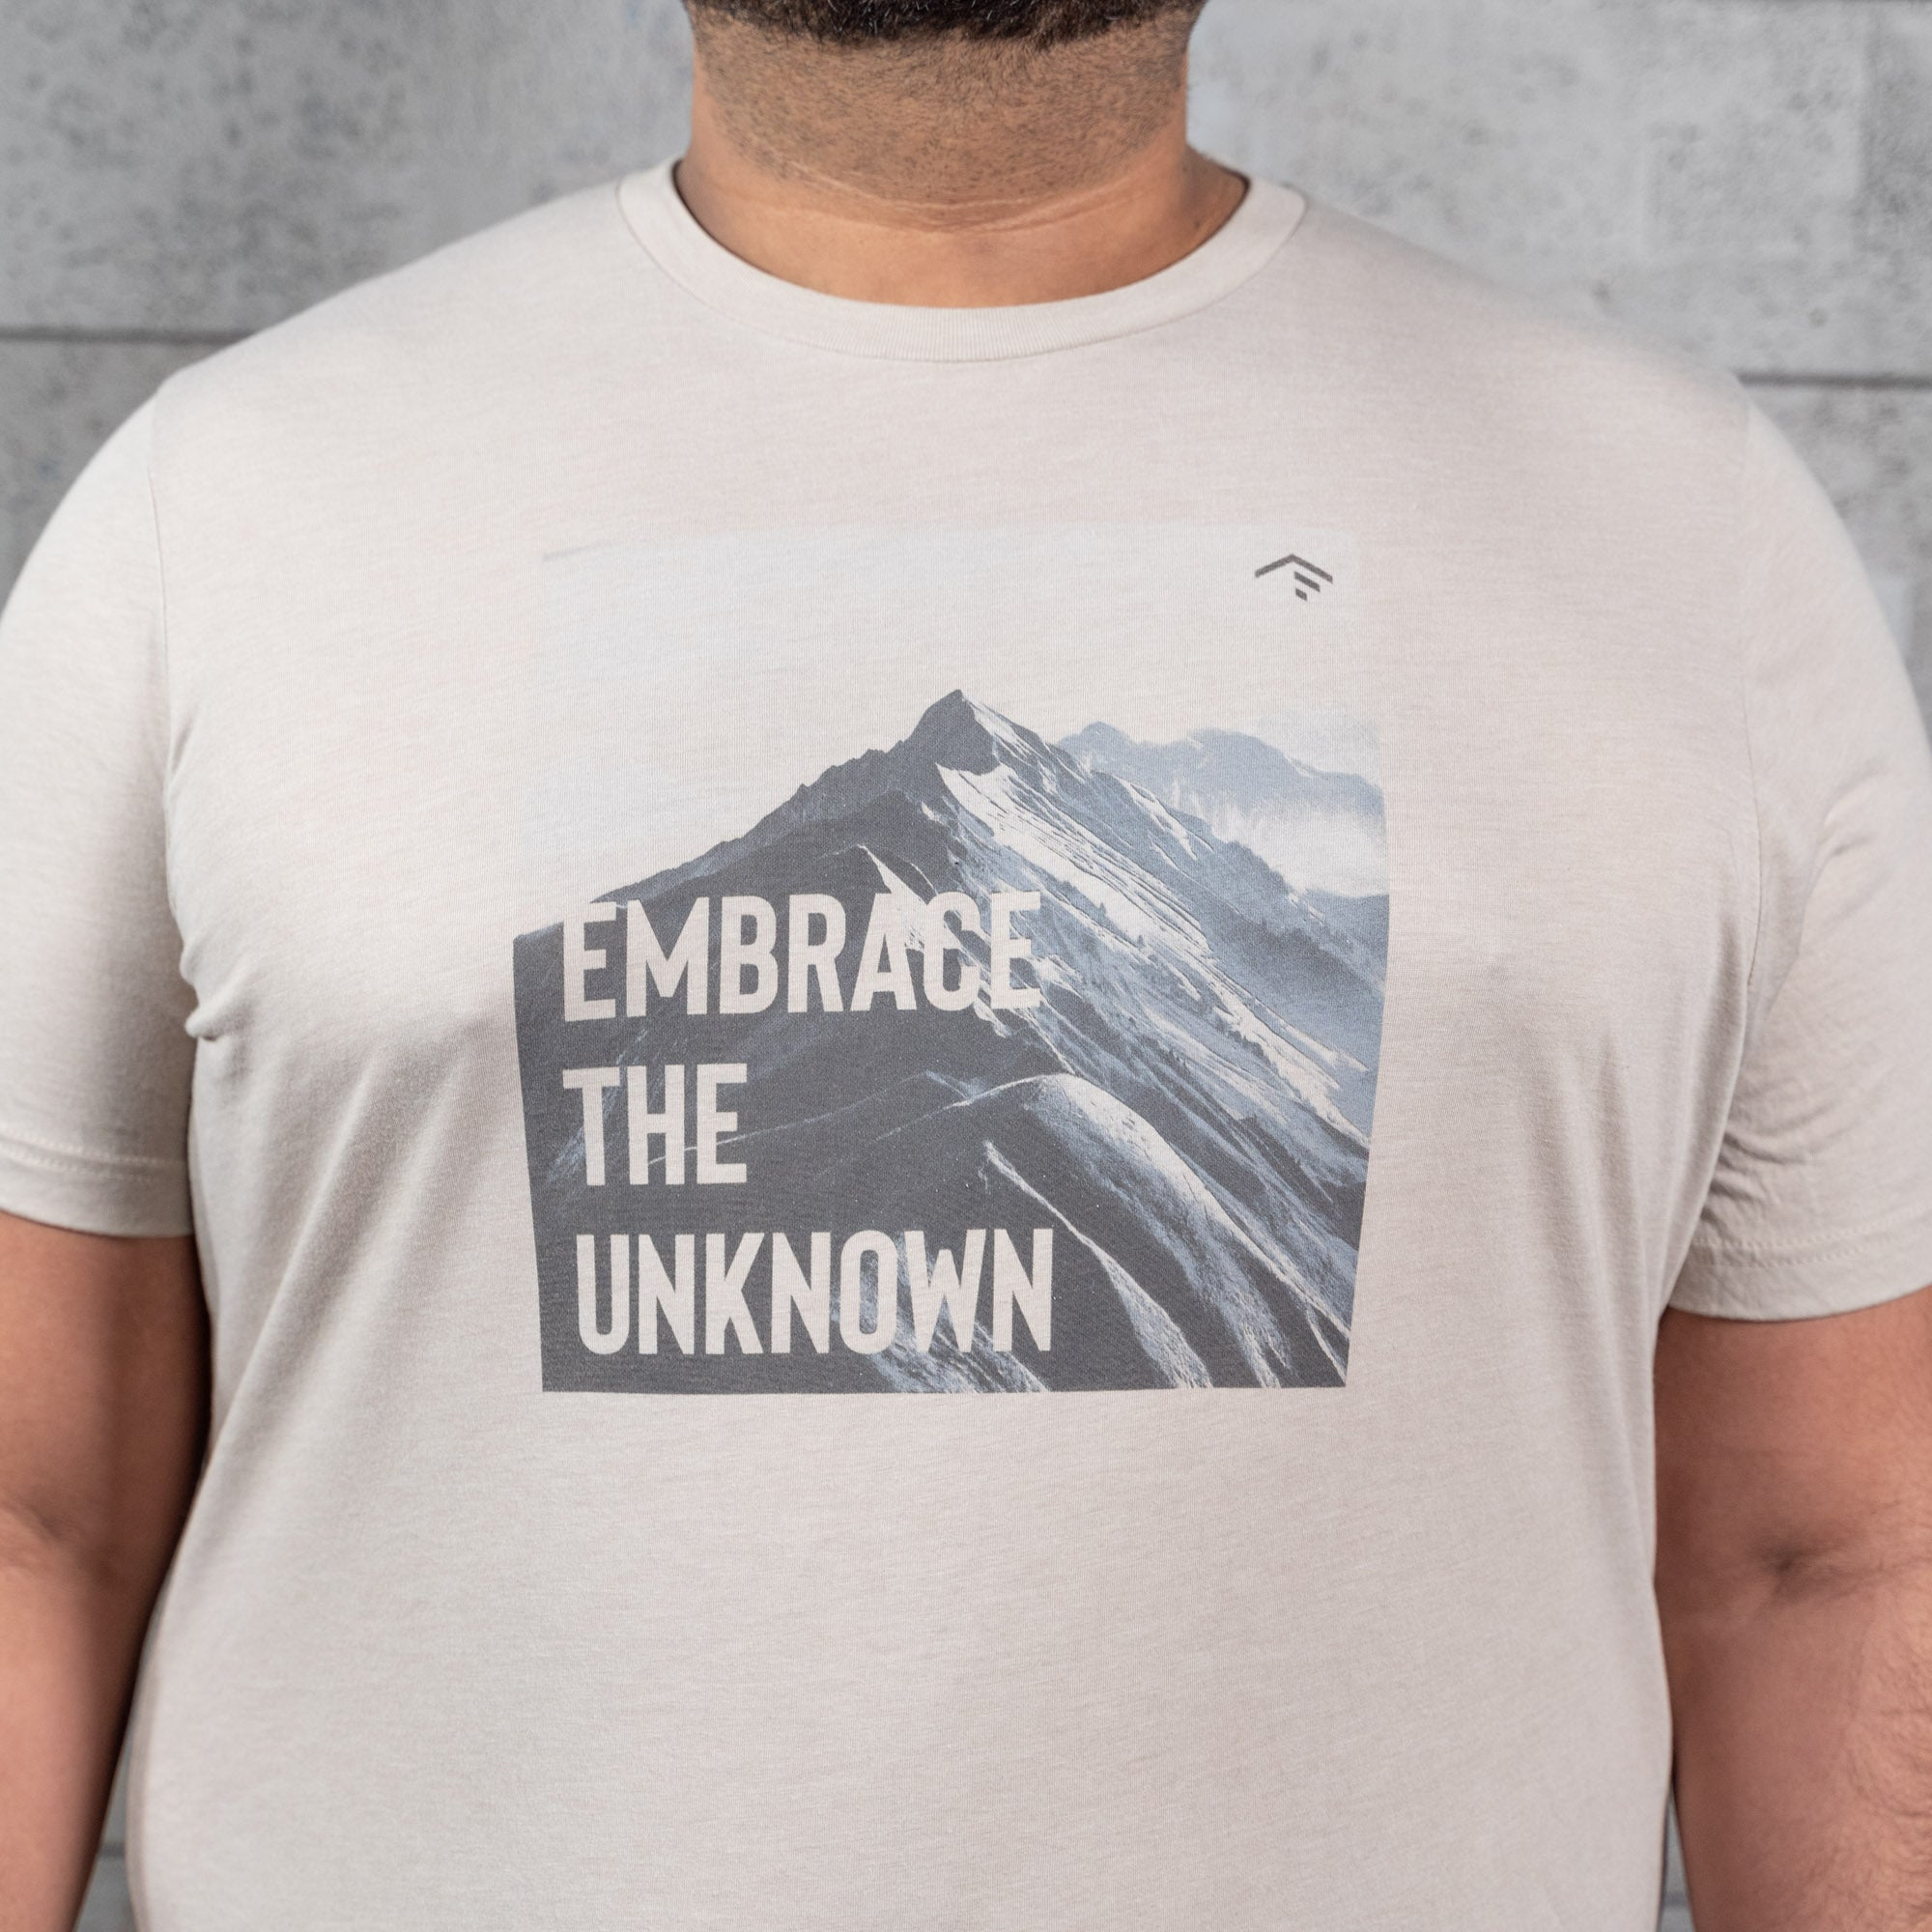 Embrace the Unknown - Short Sleeve Shirt